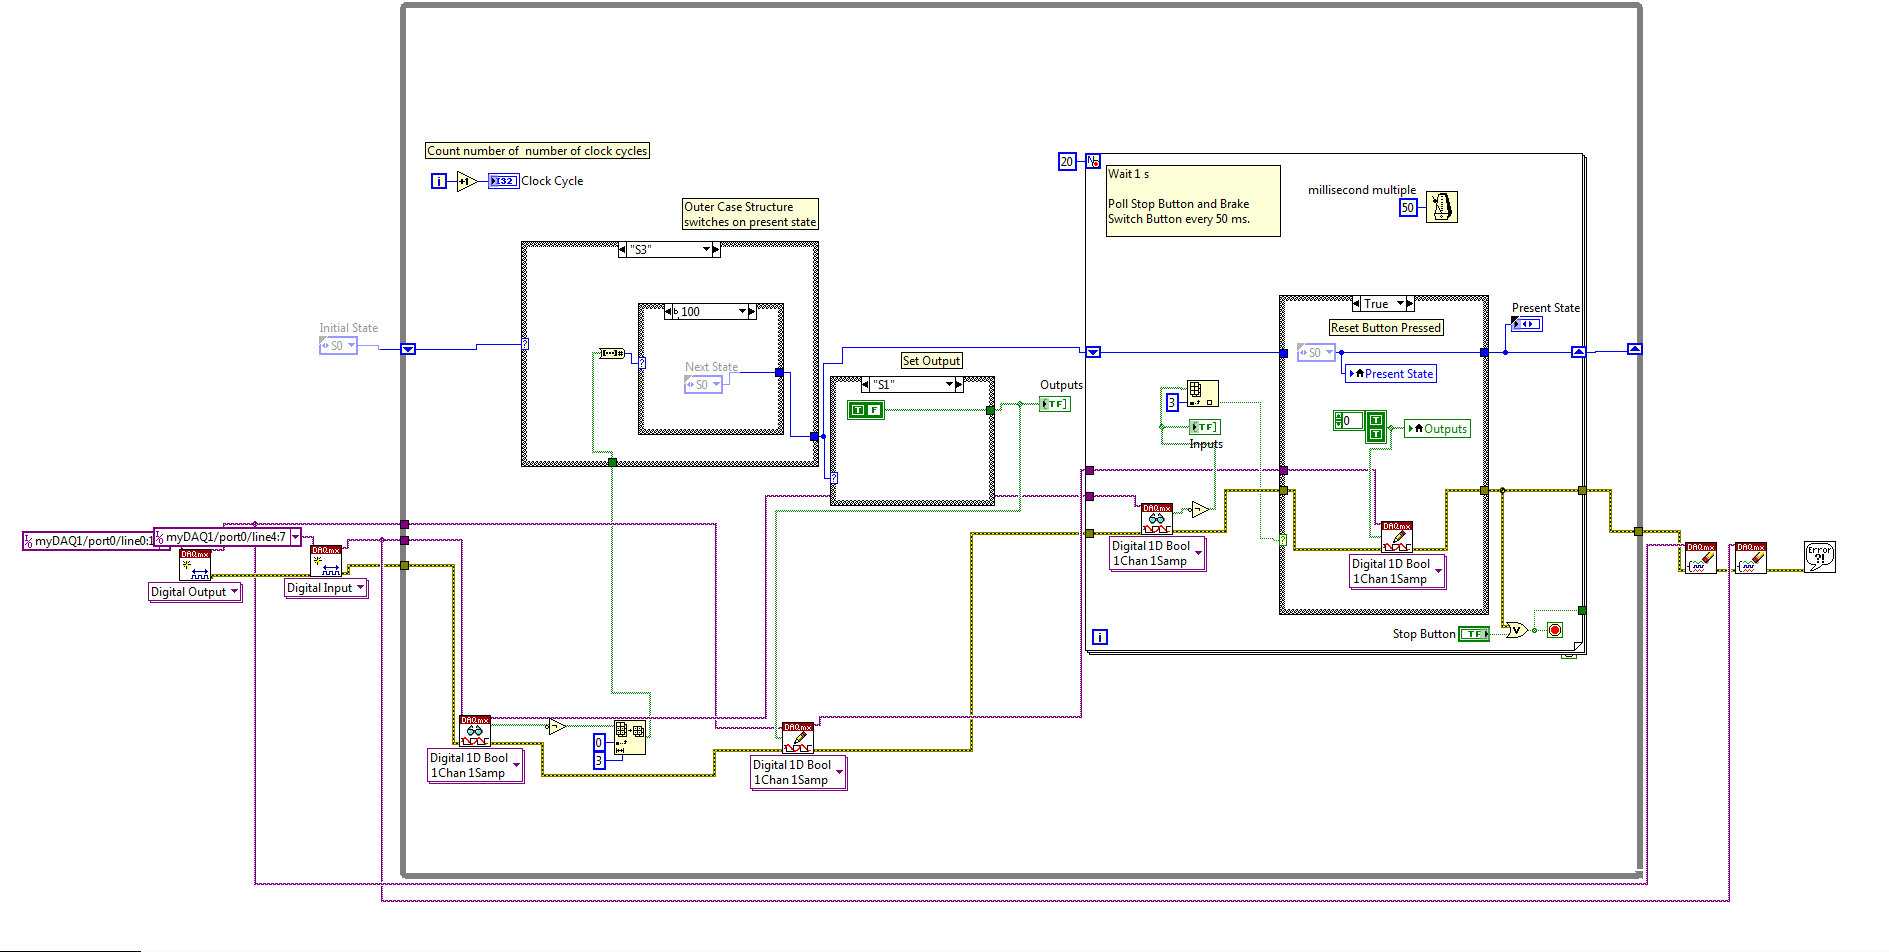 Accomplishments Kaylee Joseph Pickit 3 Circuit Diagram Using Mplab X Ide V305 We Programmed The Micro Controller A Pickit3 Additionally Displayed Our Output